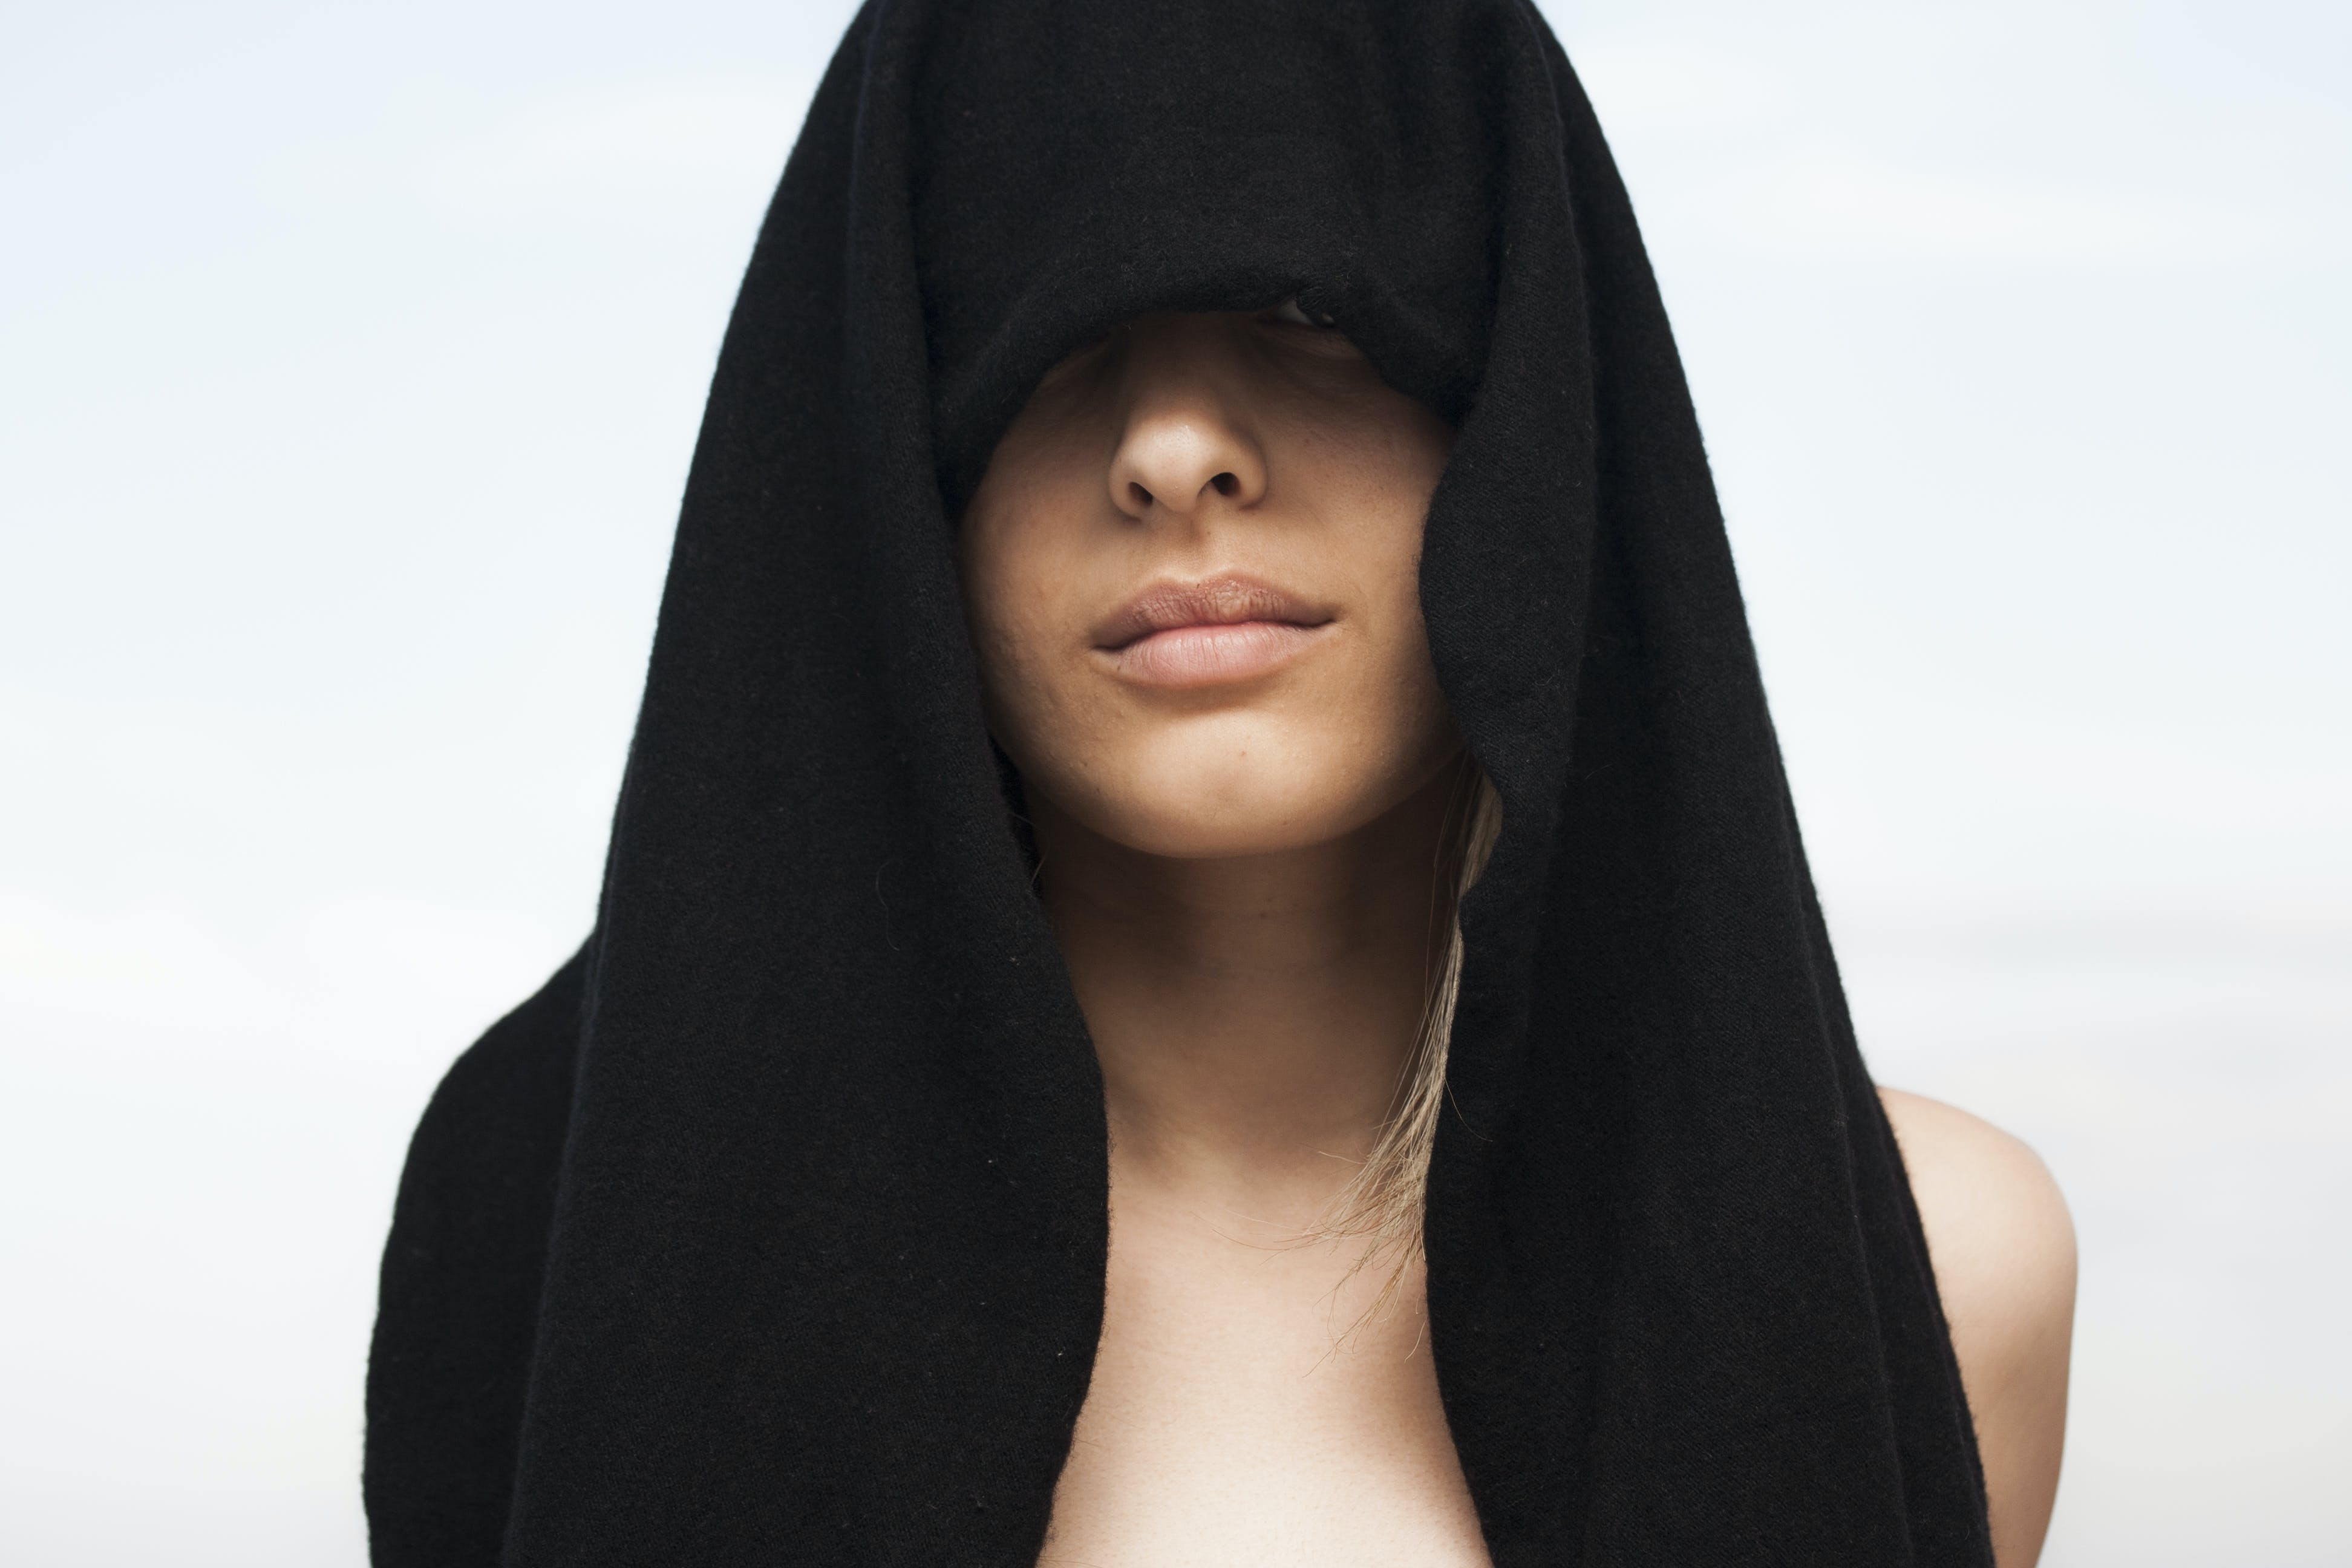 Photo of Woman With Black Towel on Her Head